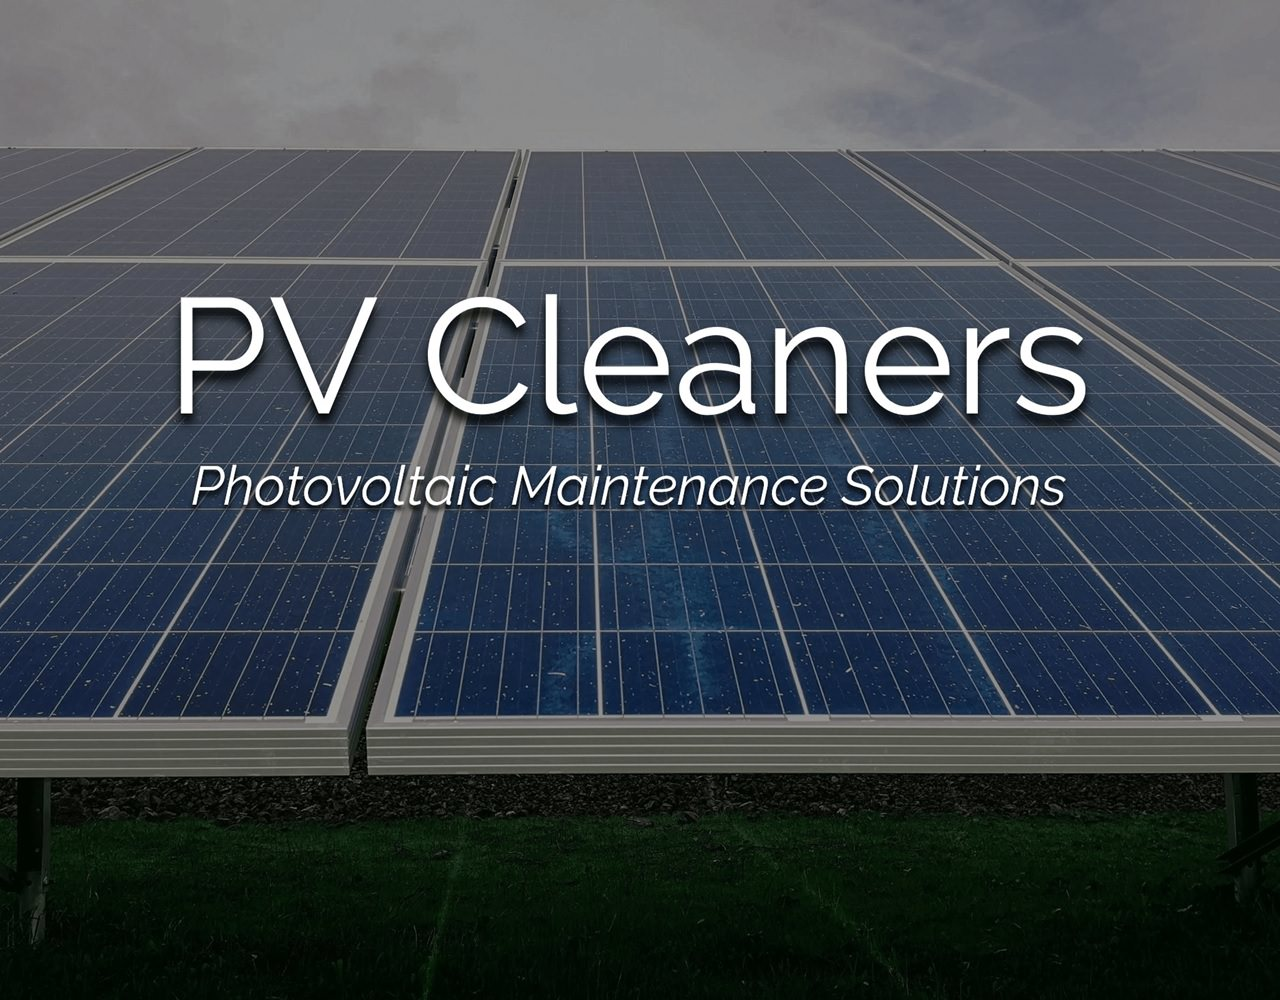 PV Cleaners